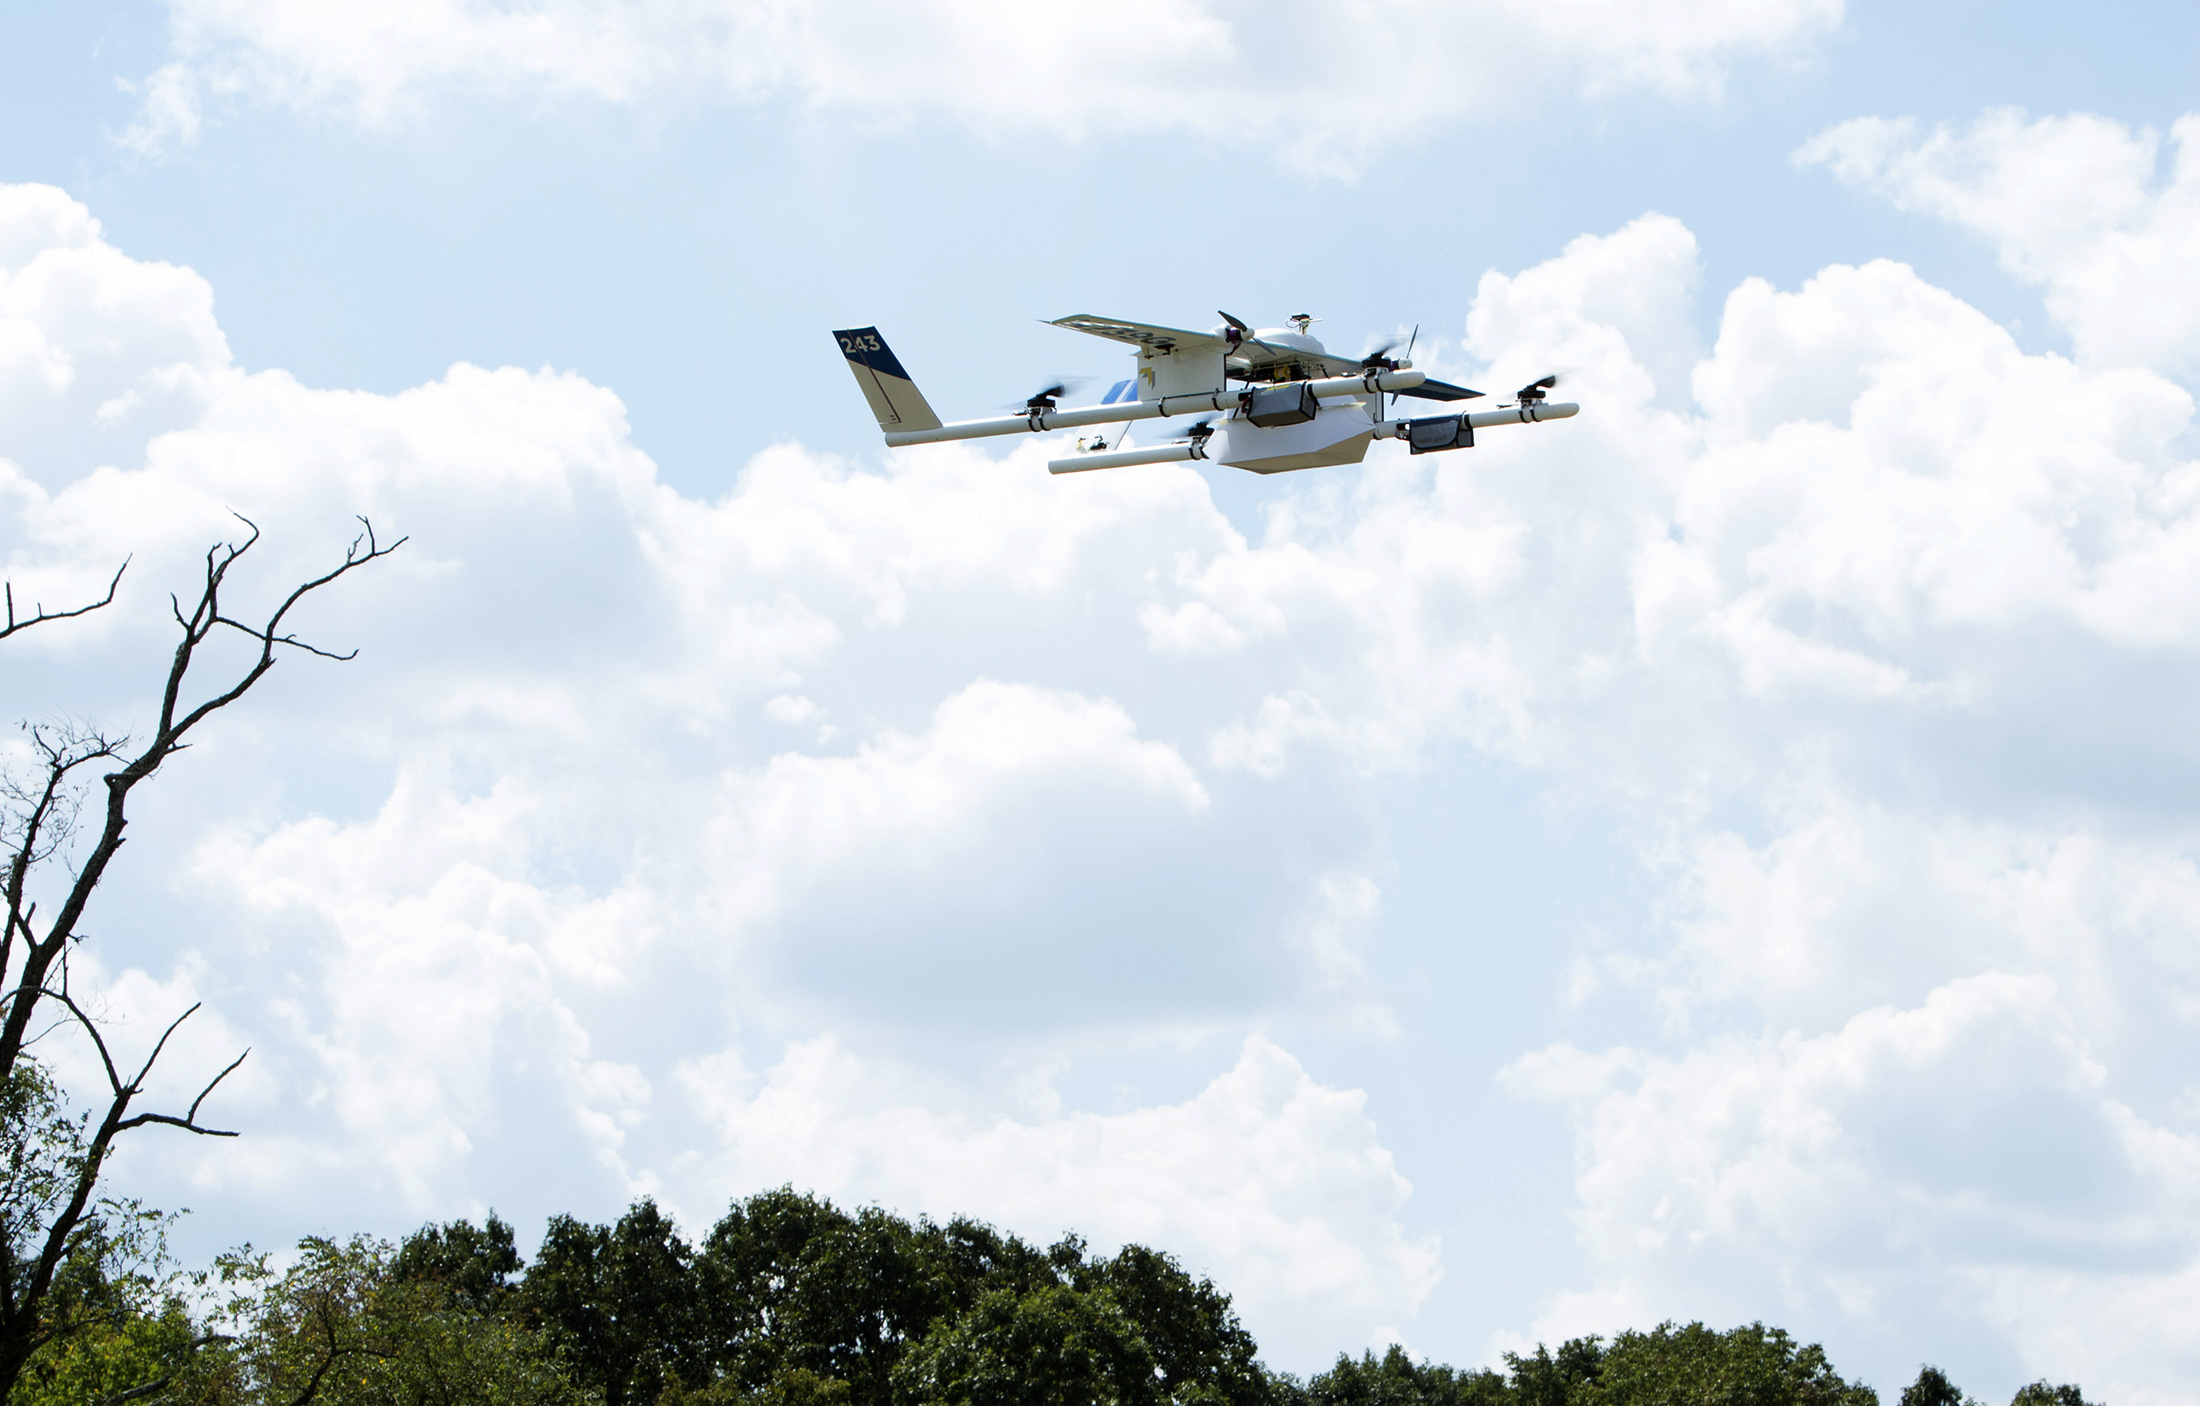 Financial scrutiny reportedly puts Project Wing drone initiative in holding pattern